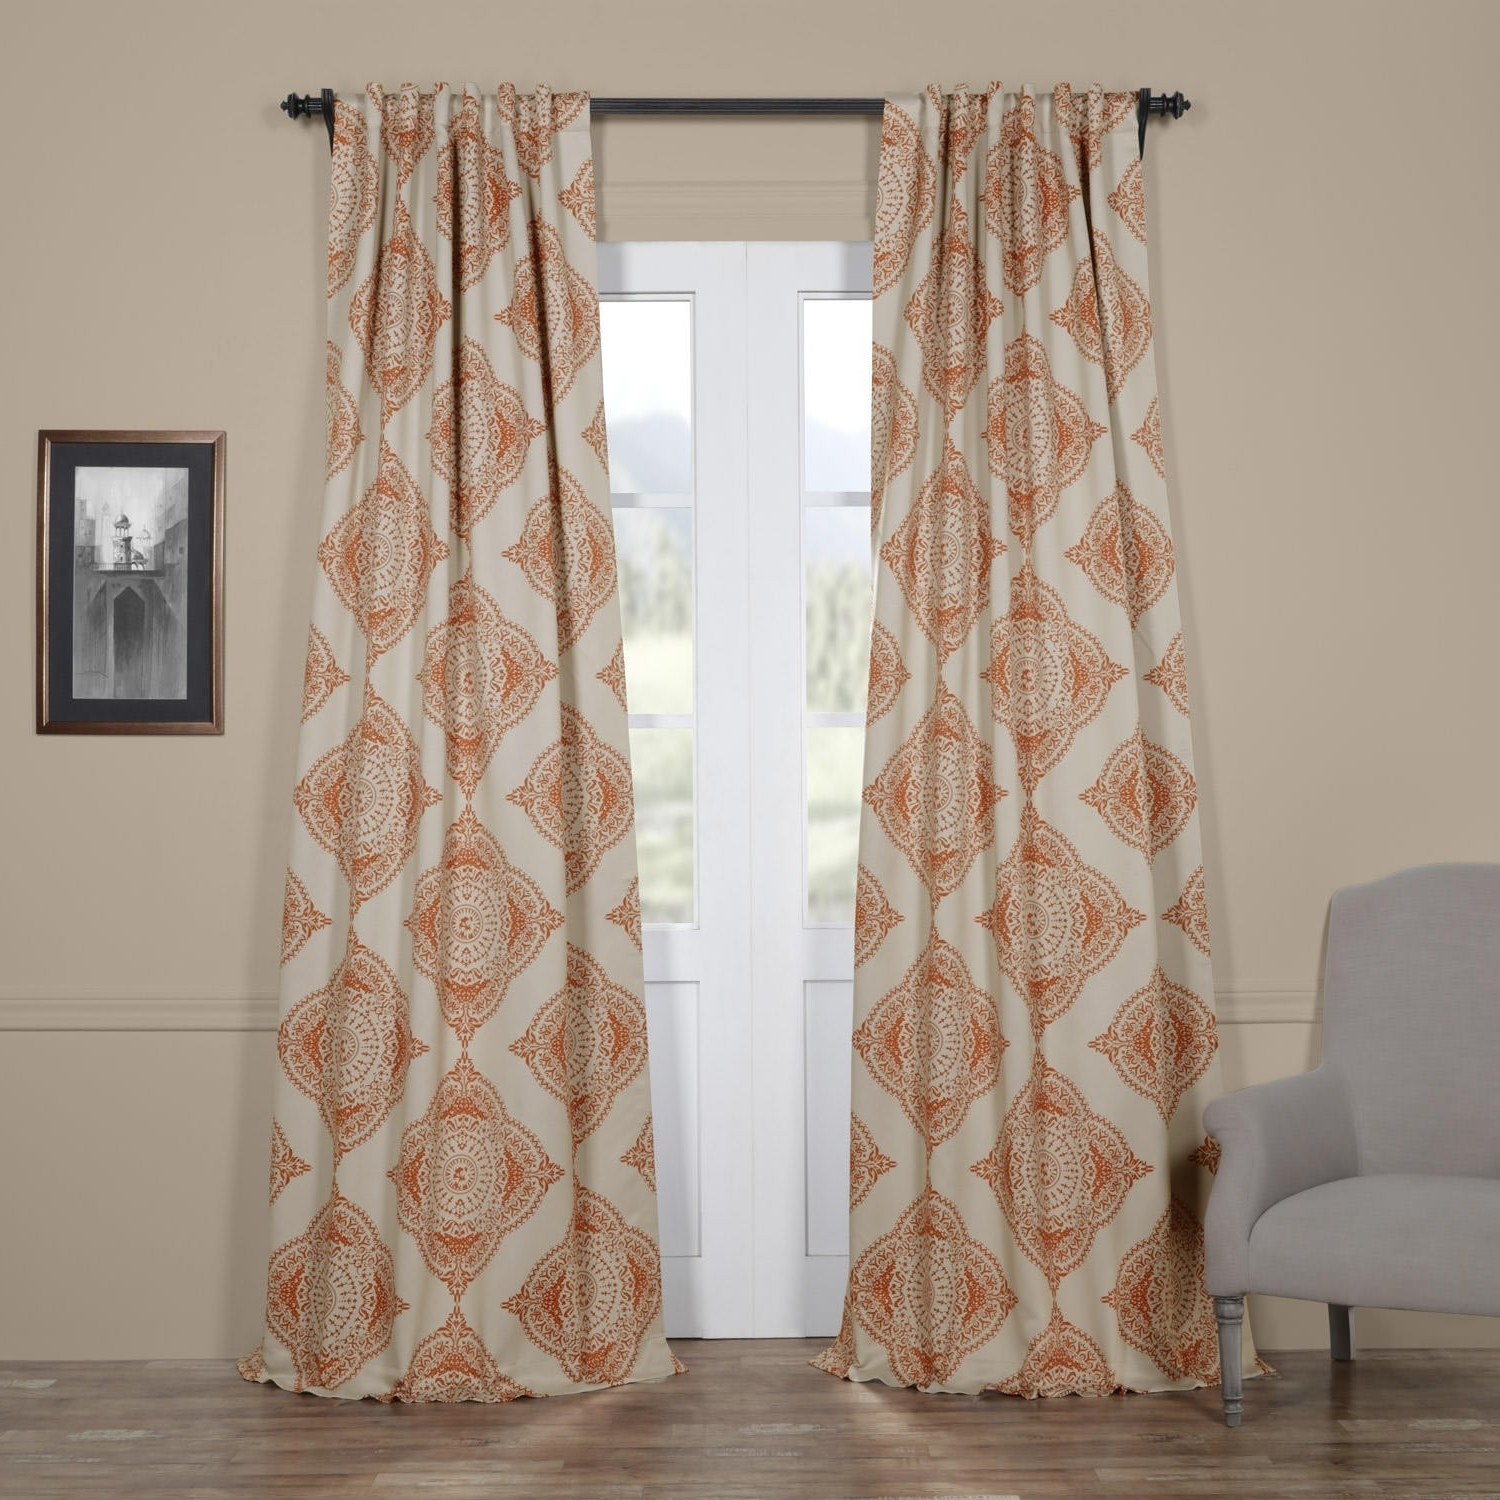 Widely Used Insulated Thermal Blackout Curtain Panel Pairs With Regard To Moroccan Style Thermal Insulated Blackout Curtain Panel Pair (View 9 of 20)